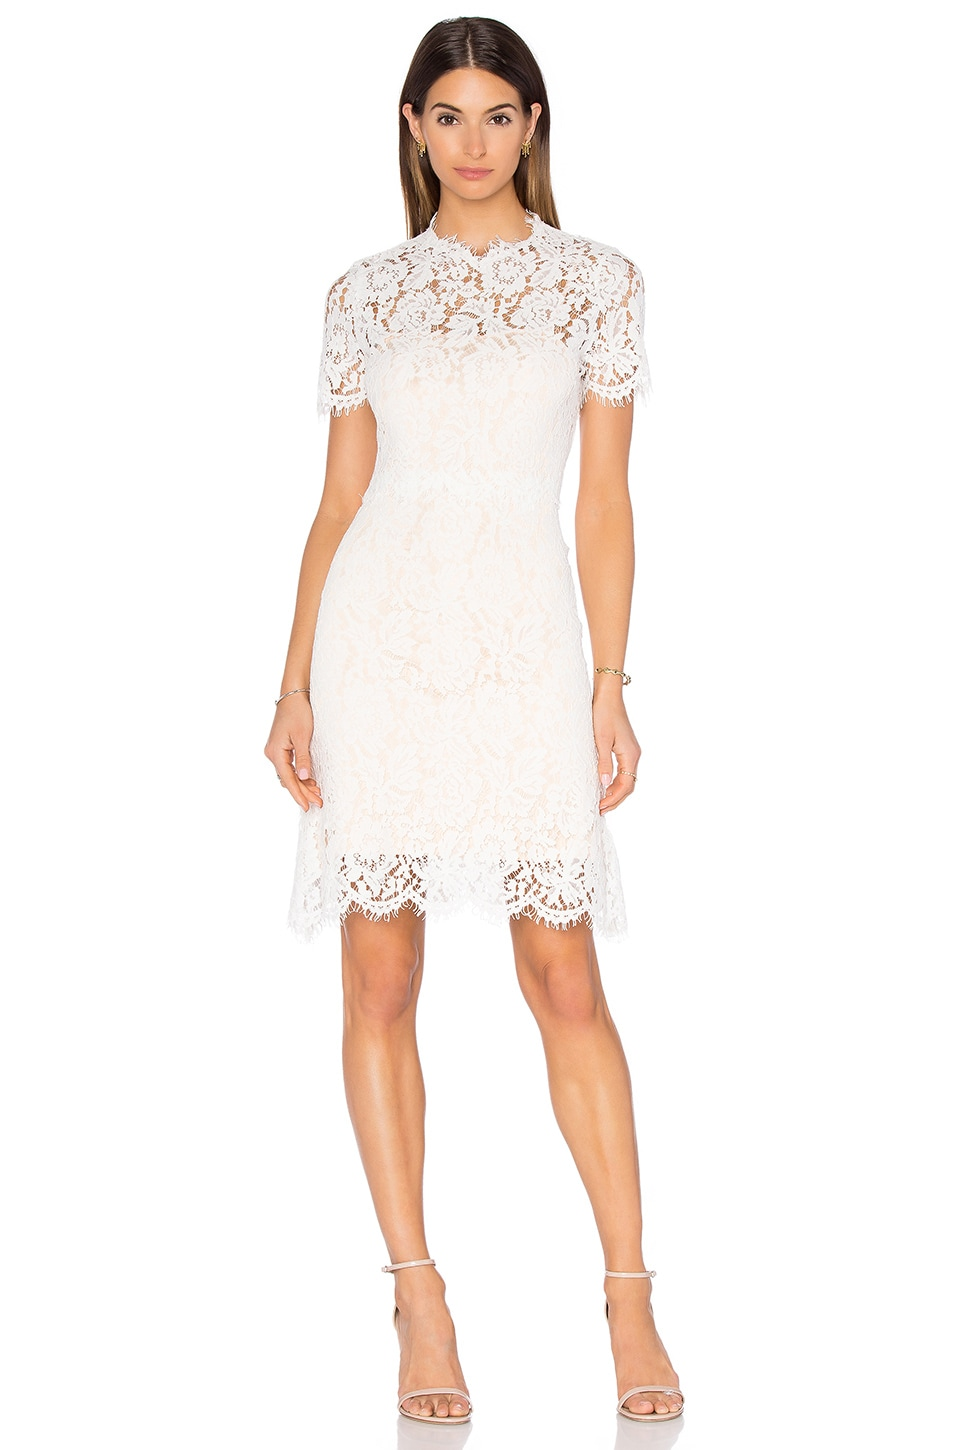 homebodii Allegra Lace Dress in White